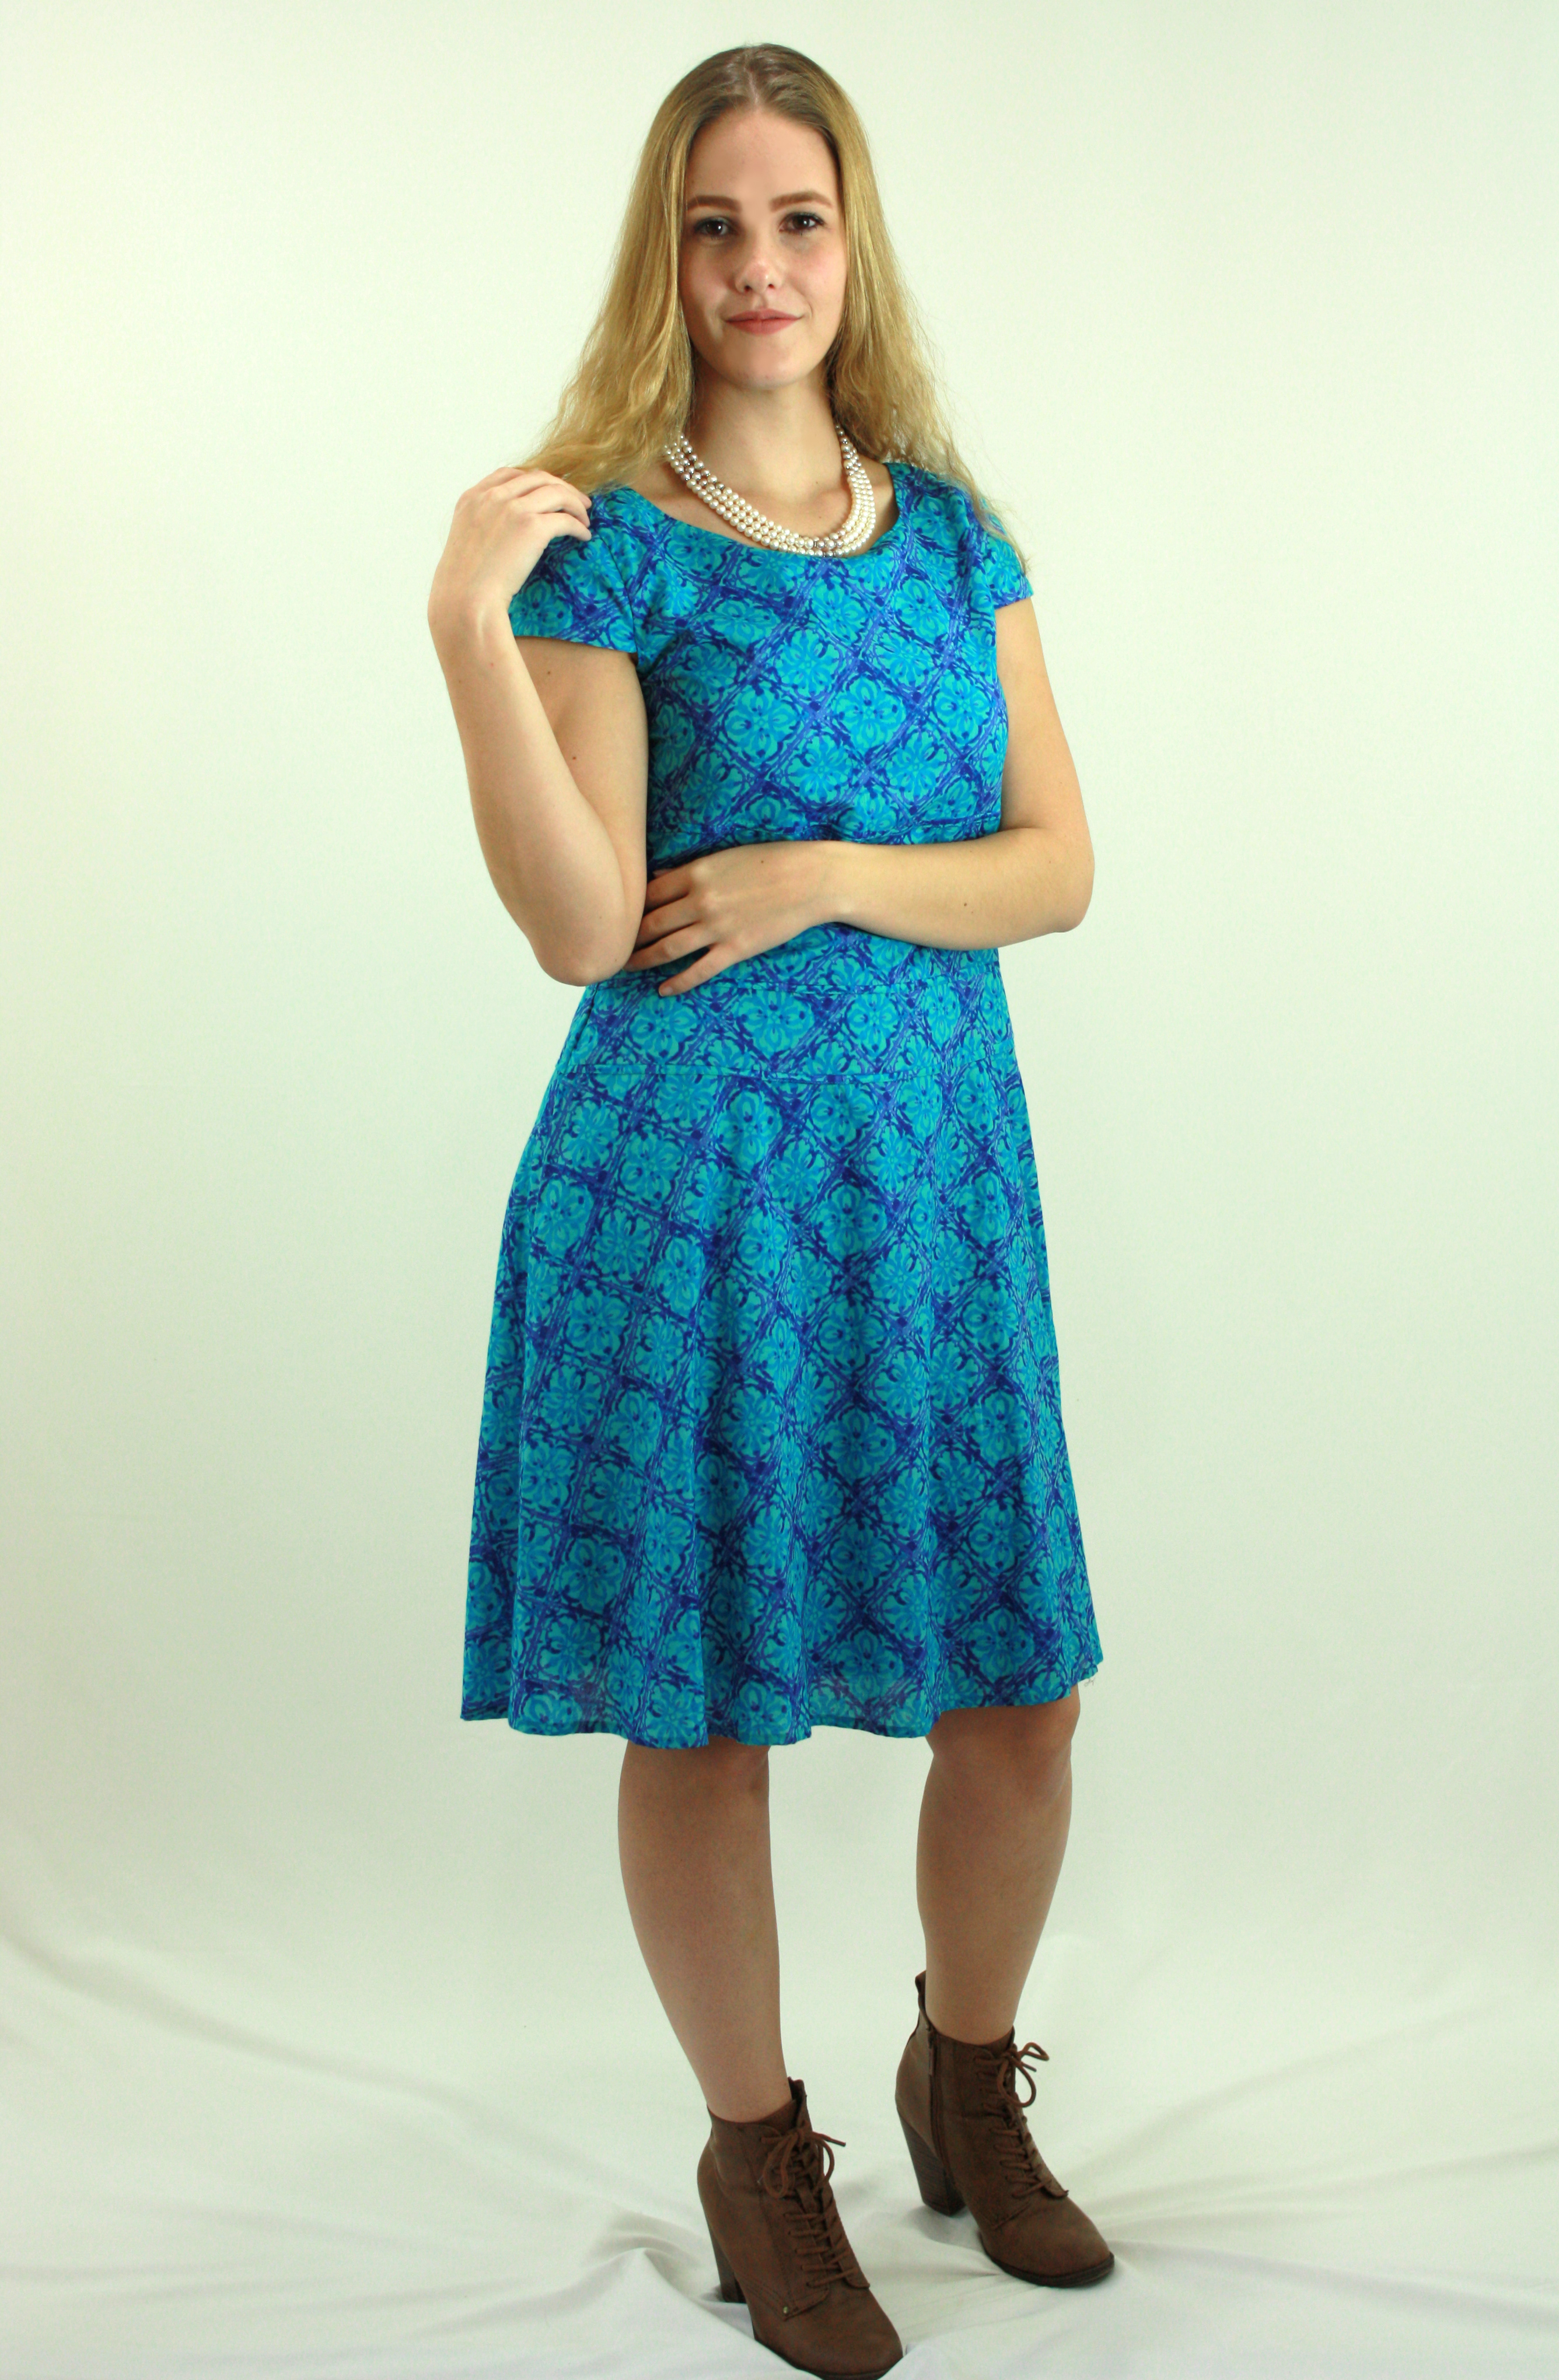 Turquoise causal dress